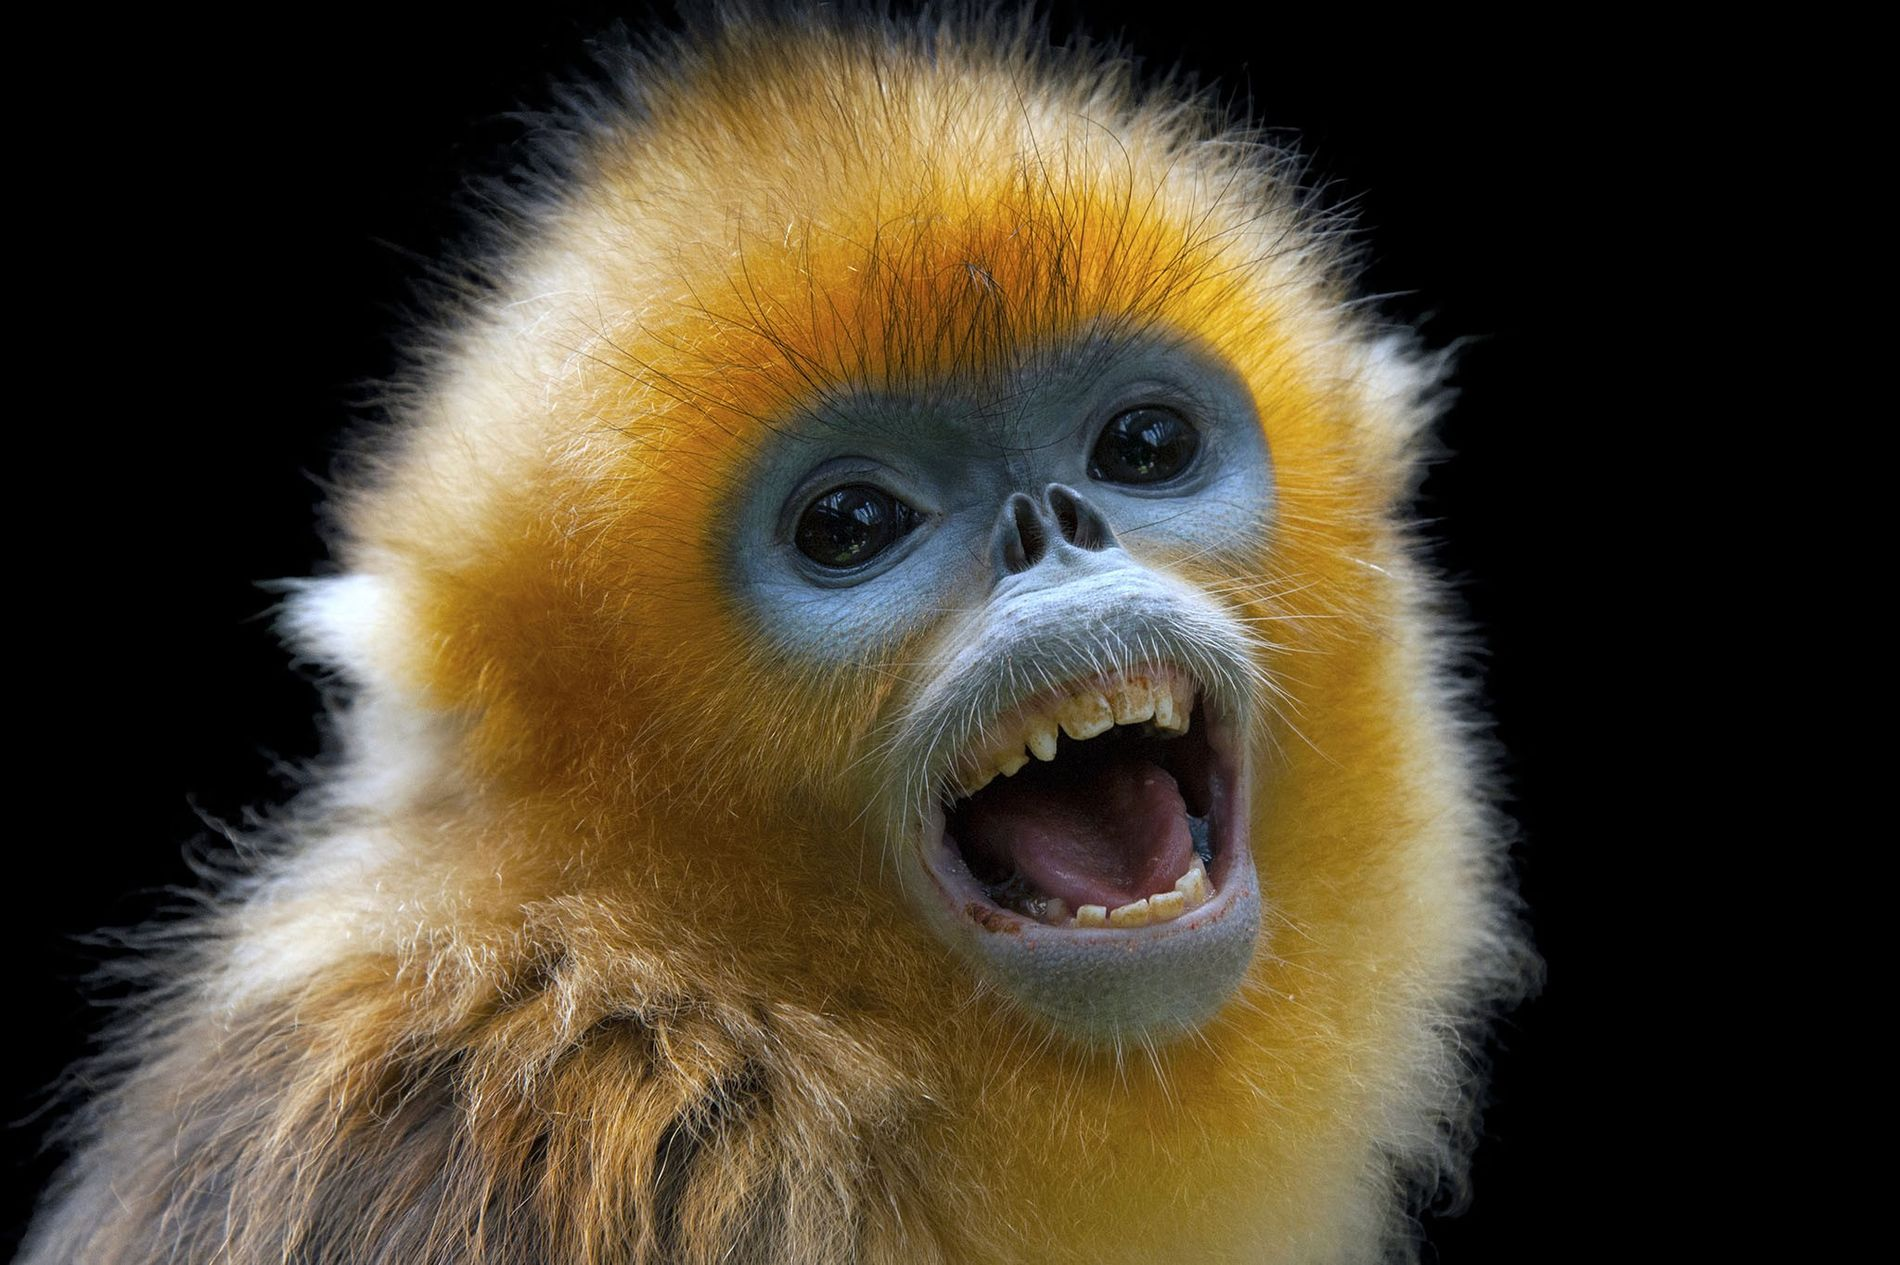 The luxurious pelt and distinctive face of the golden snub-nosed monkey grabbed the attention of ancient Chinese chroniclers.